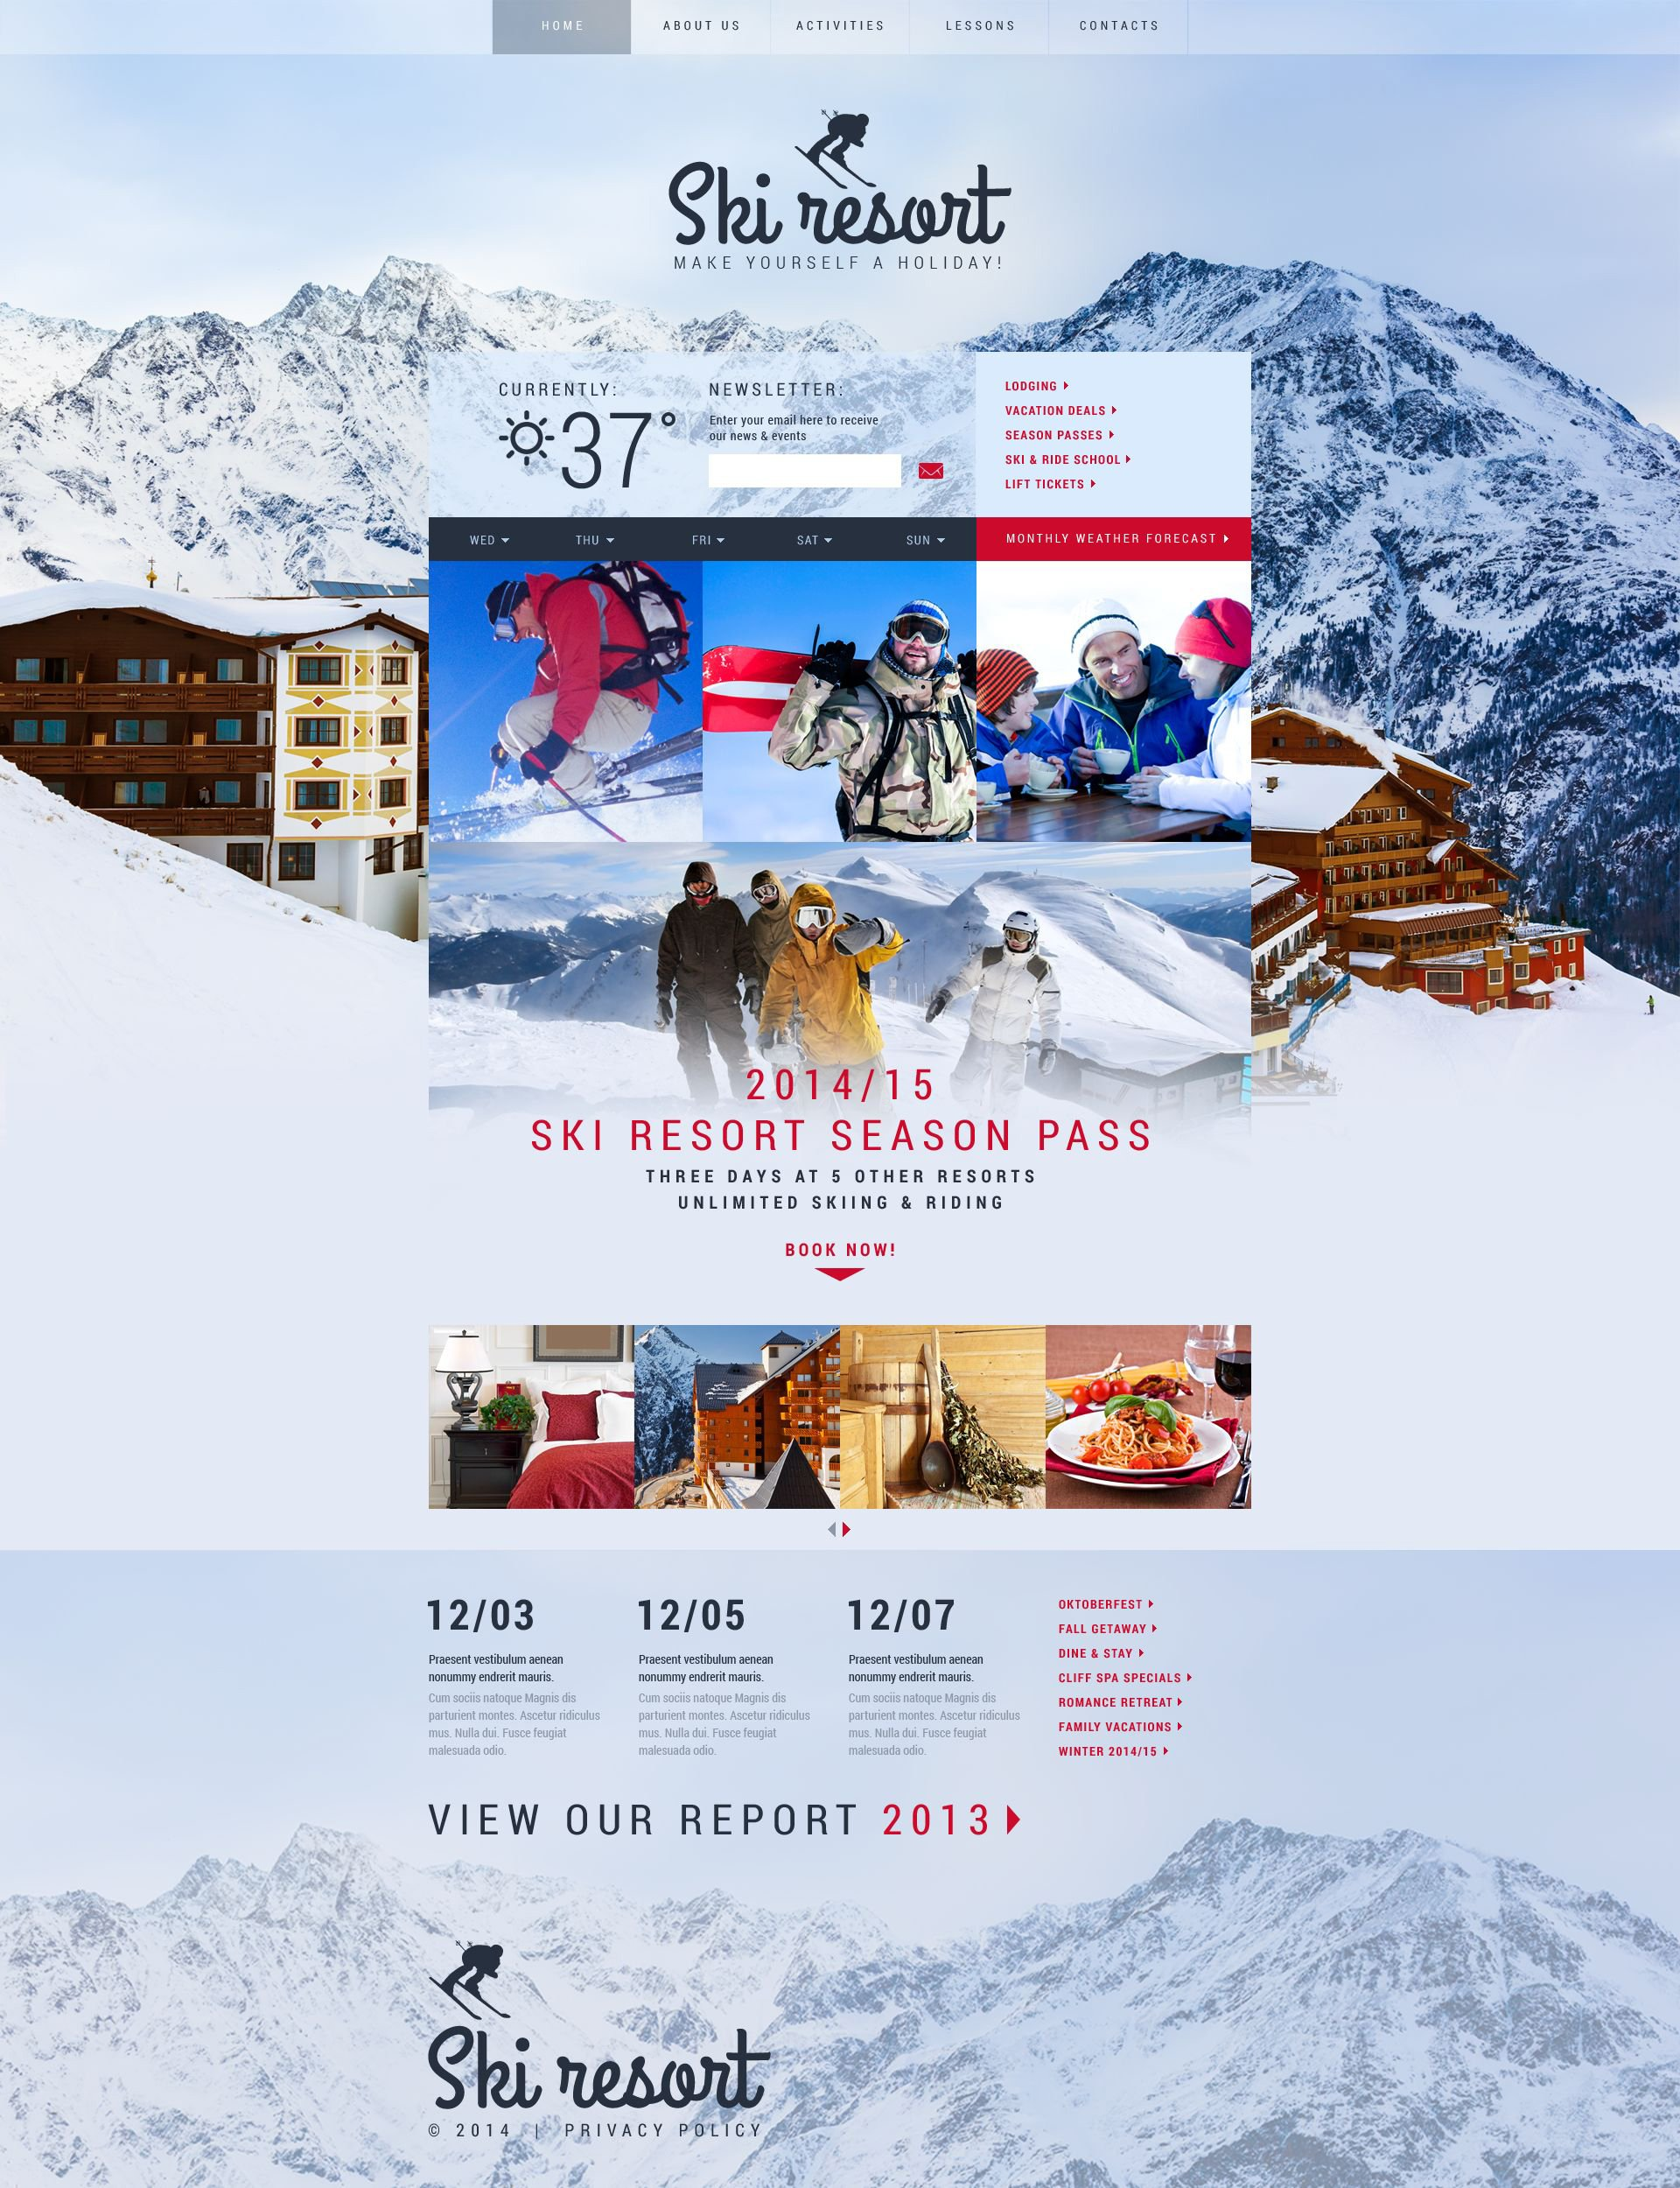 The Ski Resort Responsive Javascript Animated Design 53335, one of the best website templates of its kind (sport, most popular), also known as ski resort website template, winter sports website template, extreme website template, Alpine skiing website template, resort website template, mountains website template, team website template, tour resort website template, active website template, skis website template, gear website template, snowboarding website template, showboard website template, mountain website template, hill website template, helmets website template, gloves website template, shoes website template, protection website template, clothes company website template, quality website template, products website template, accessories website template, high professional website template, skill website template, support website template, training website template, sh and related with ski resort, winter sports, extreme, Alpine skiing, resort, mountains, team, tour resort, active, skis, gear, snowboarding, showboard, mountain, hill, helmets, gloves, shoes, protection, clothes company, quality, products, accessories, high professional, skill, support, training, sh, etc.